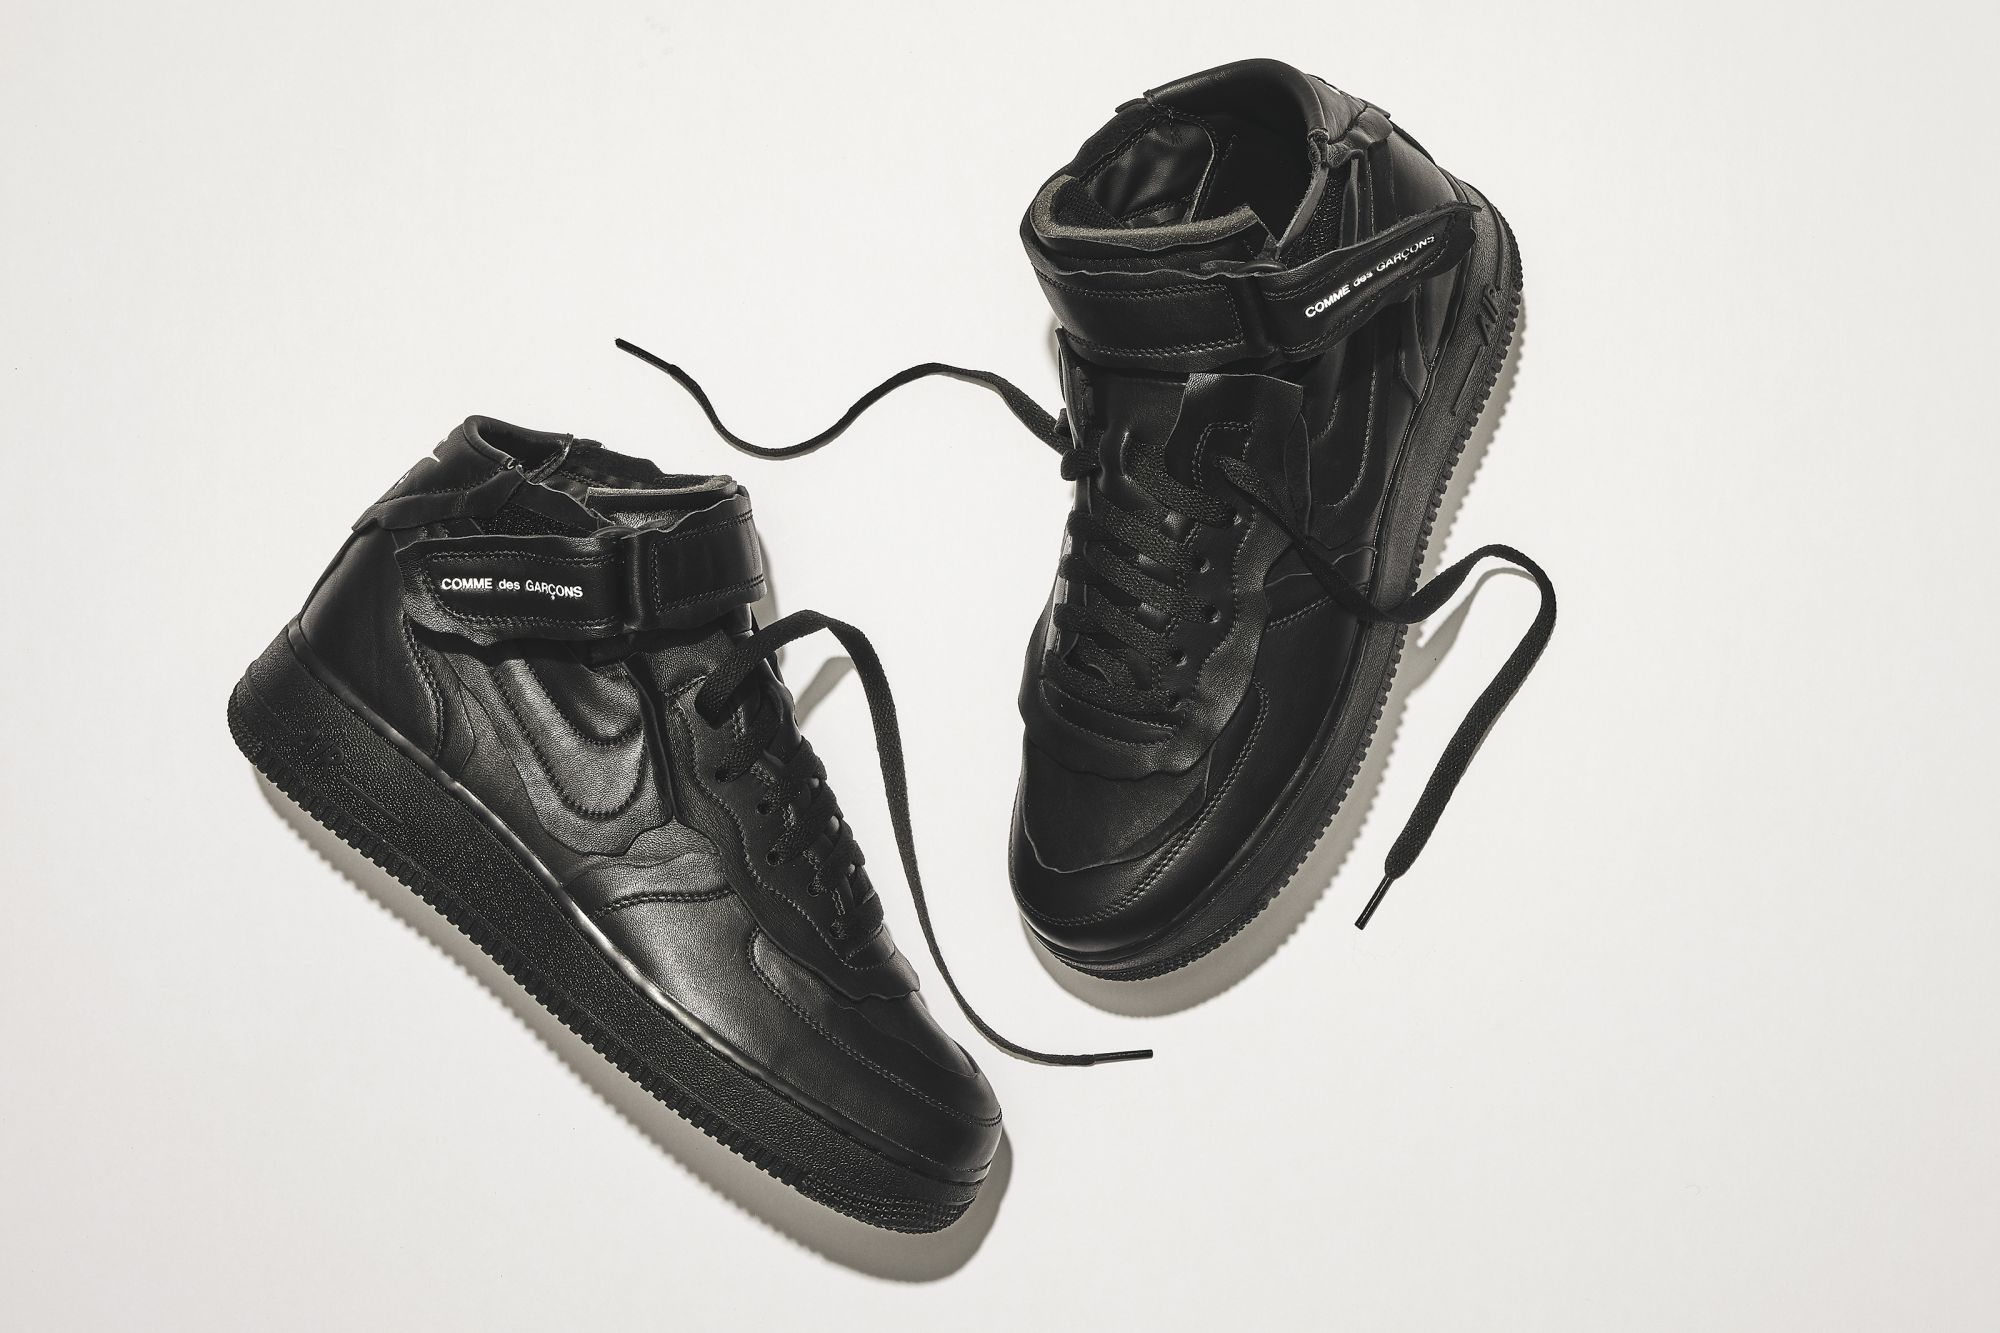 The Nike Comme des Garçons Air Force 1 Mid Drops on October 23 at Dover Street Market